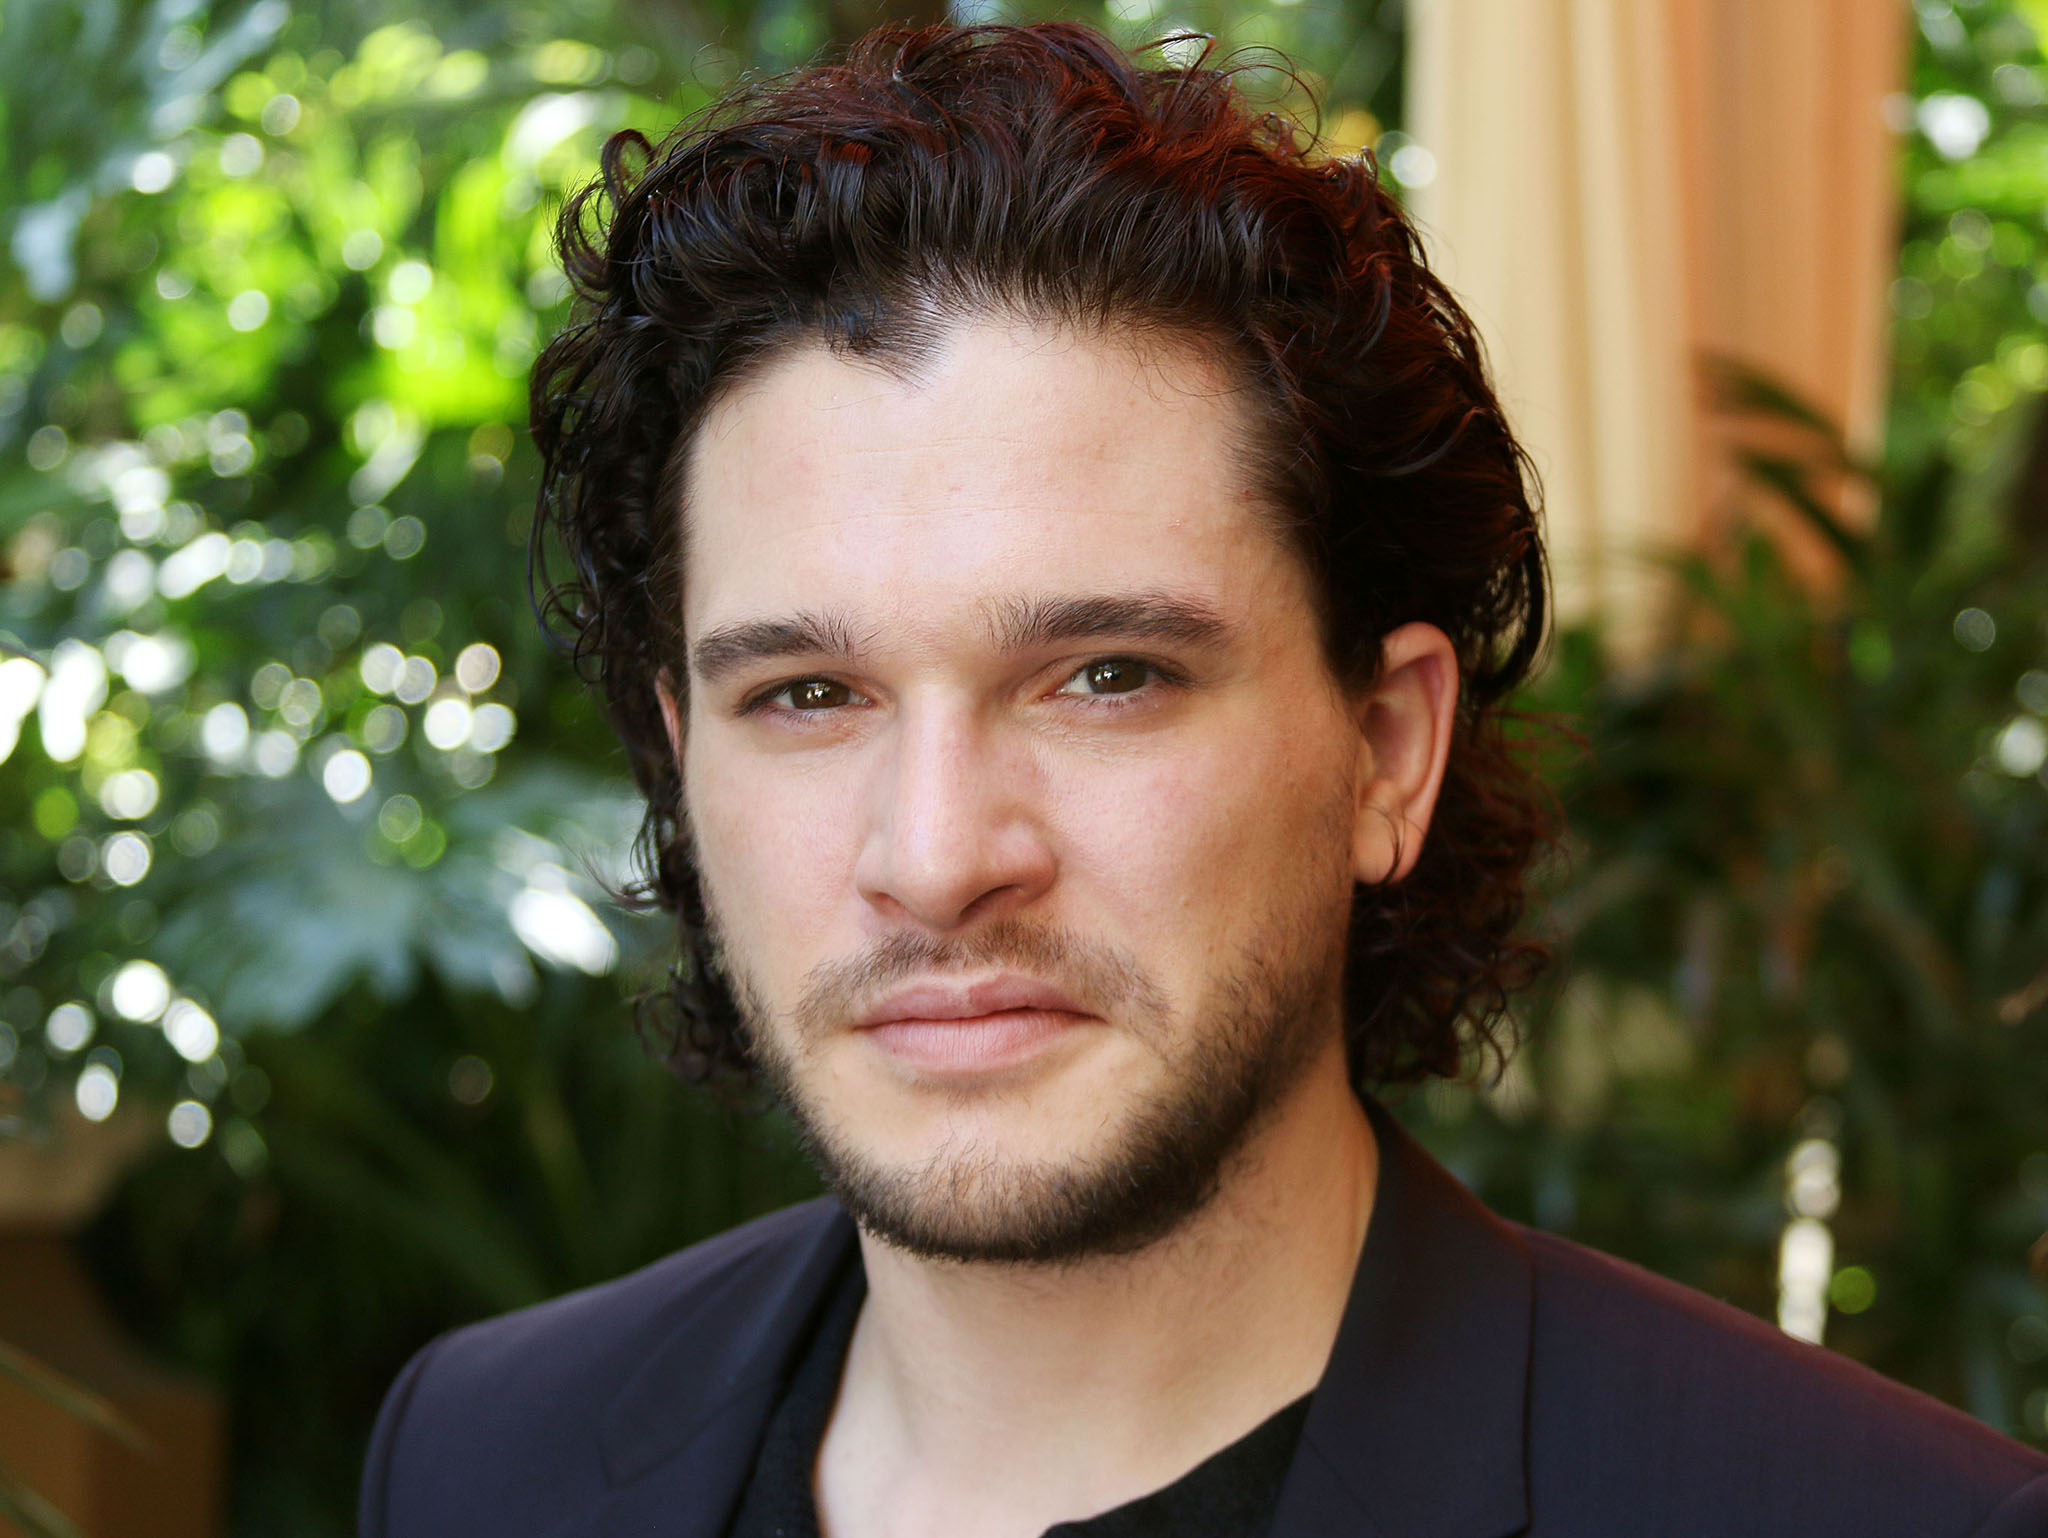 Game Of Thrones Actor Kit Harington Leads Disability Campaign With